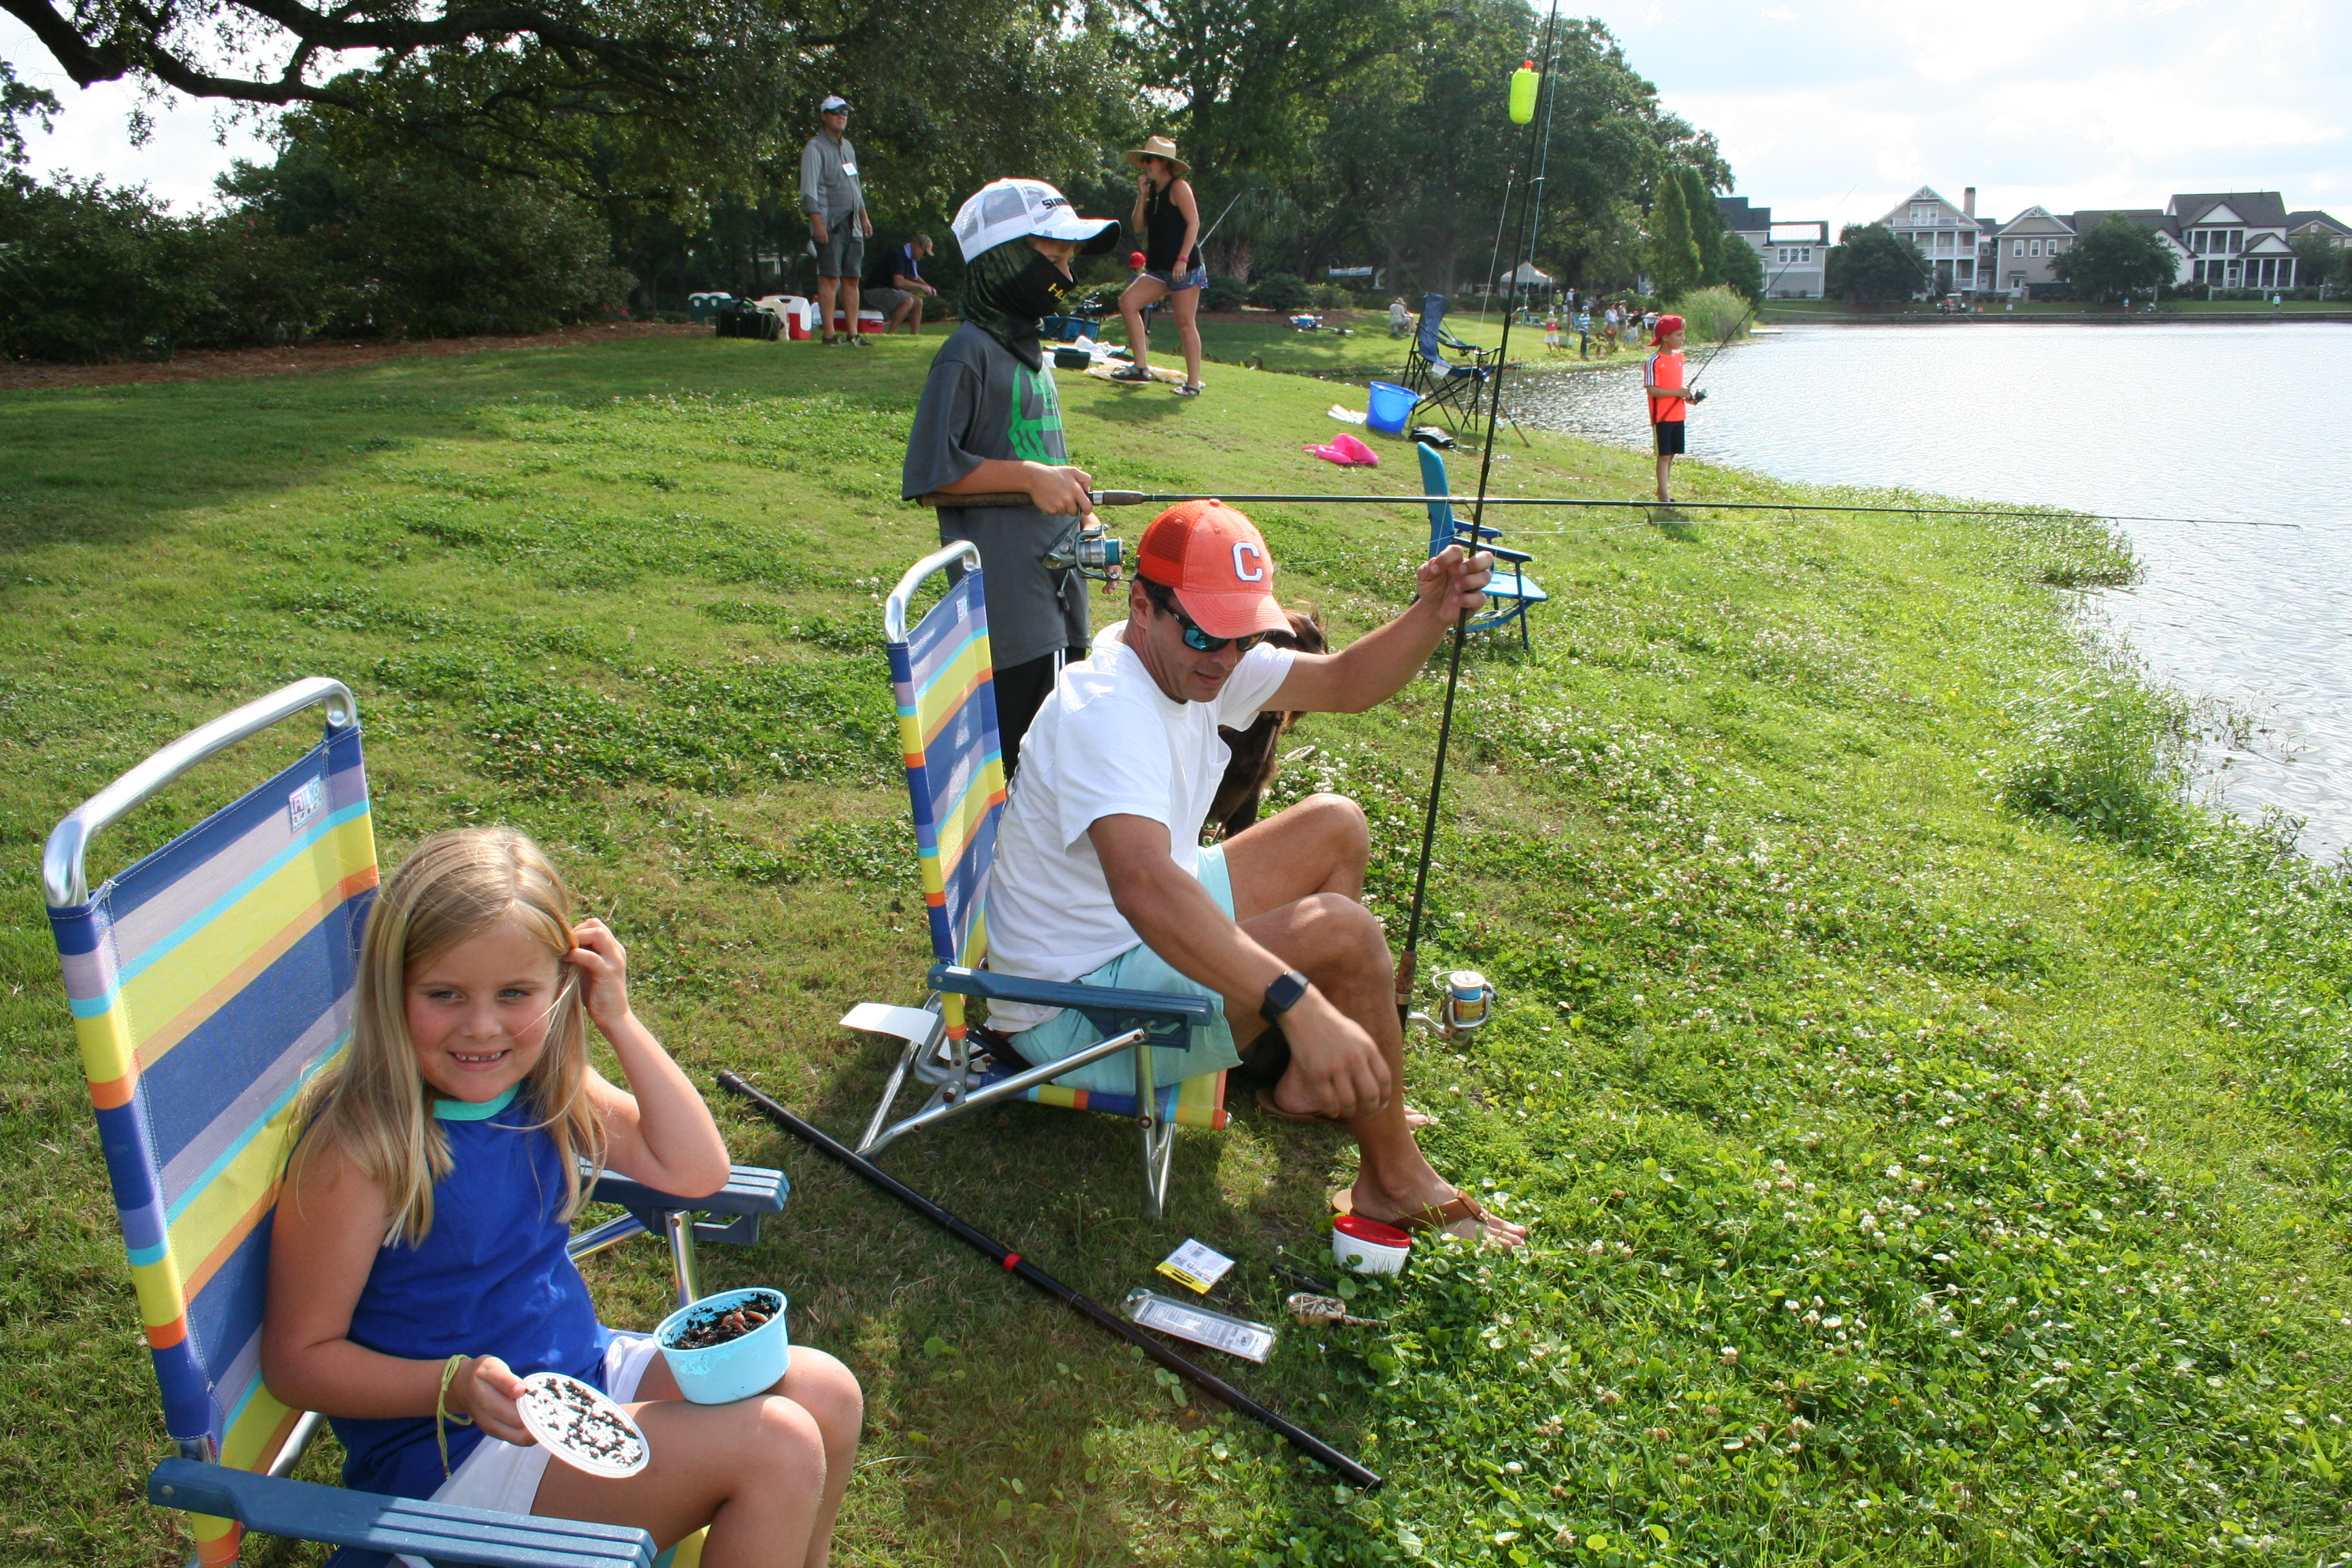 The Thaxton family was all in for the Kids' Fishing Tournament! Even dog, Grady, got in on the action!